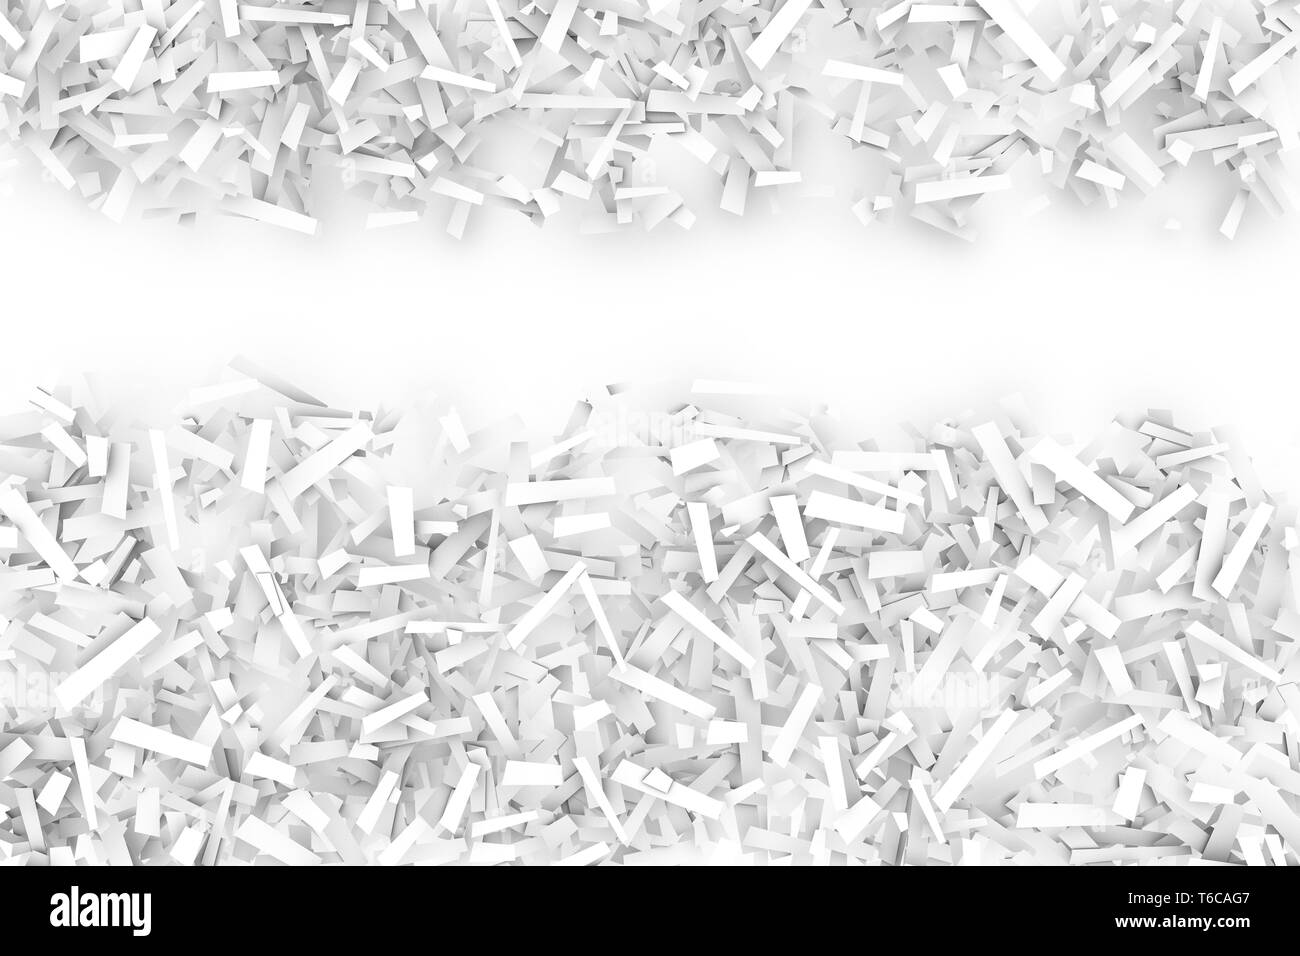 A tangled pile of white geometric confetti shapes on a bright background.  3D illustration.  Space for text upper third. - Stock Image